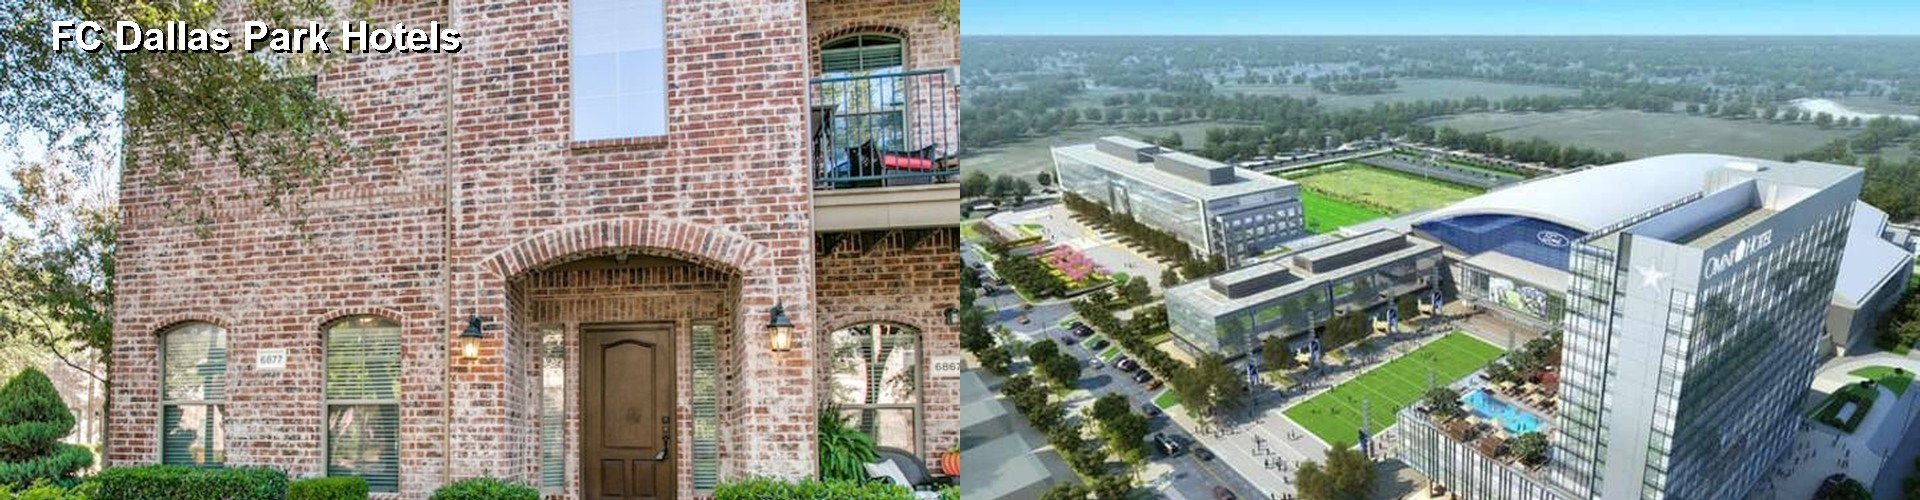 5 Best Hotels near FC Dallas Park